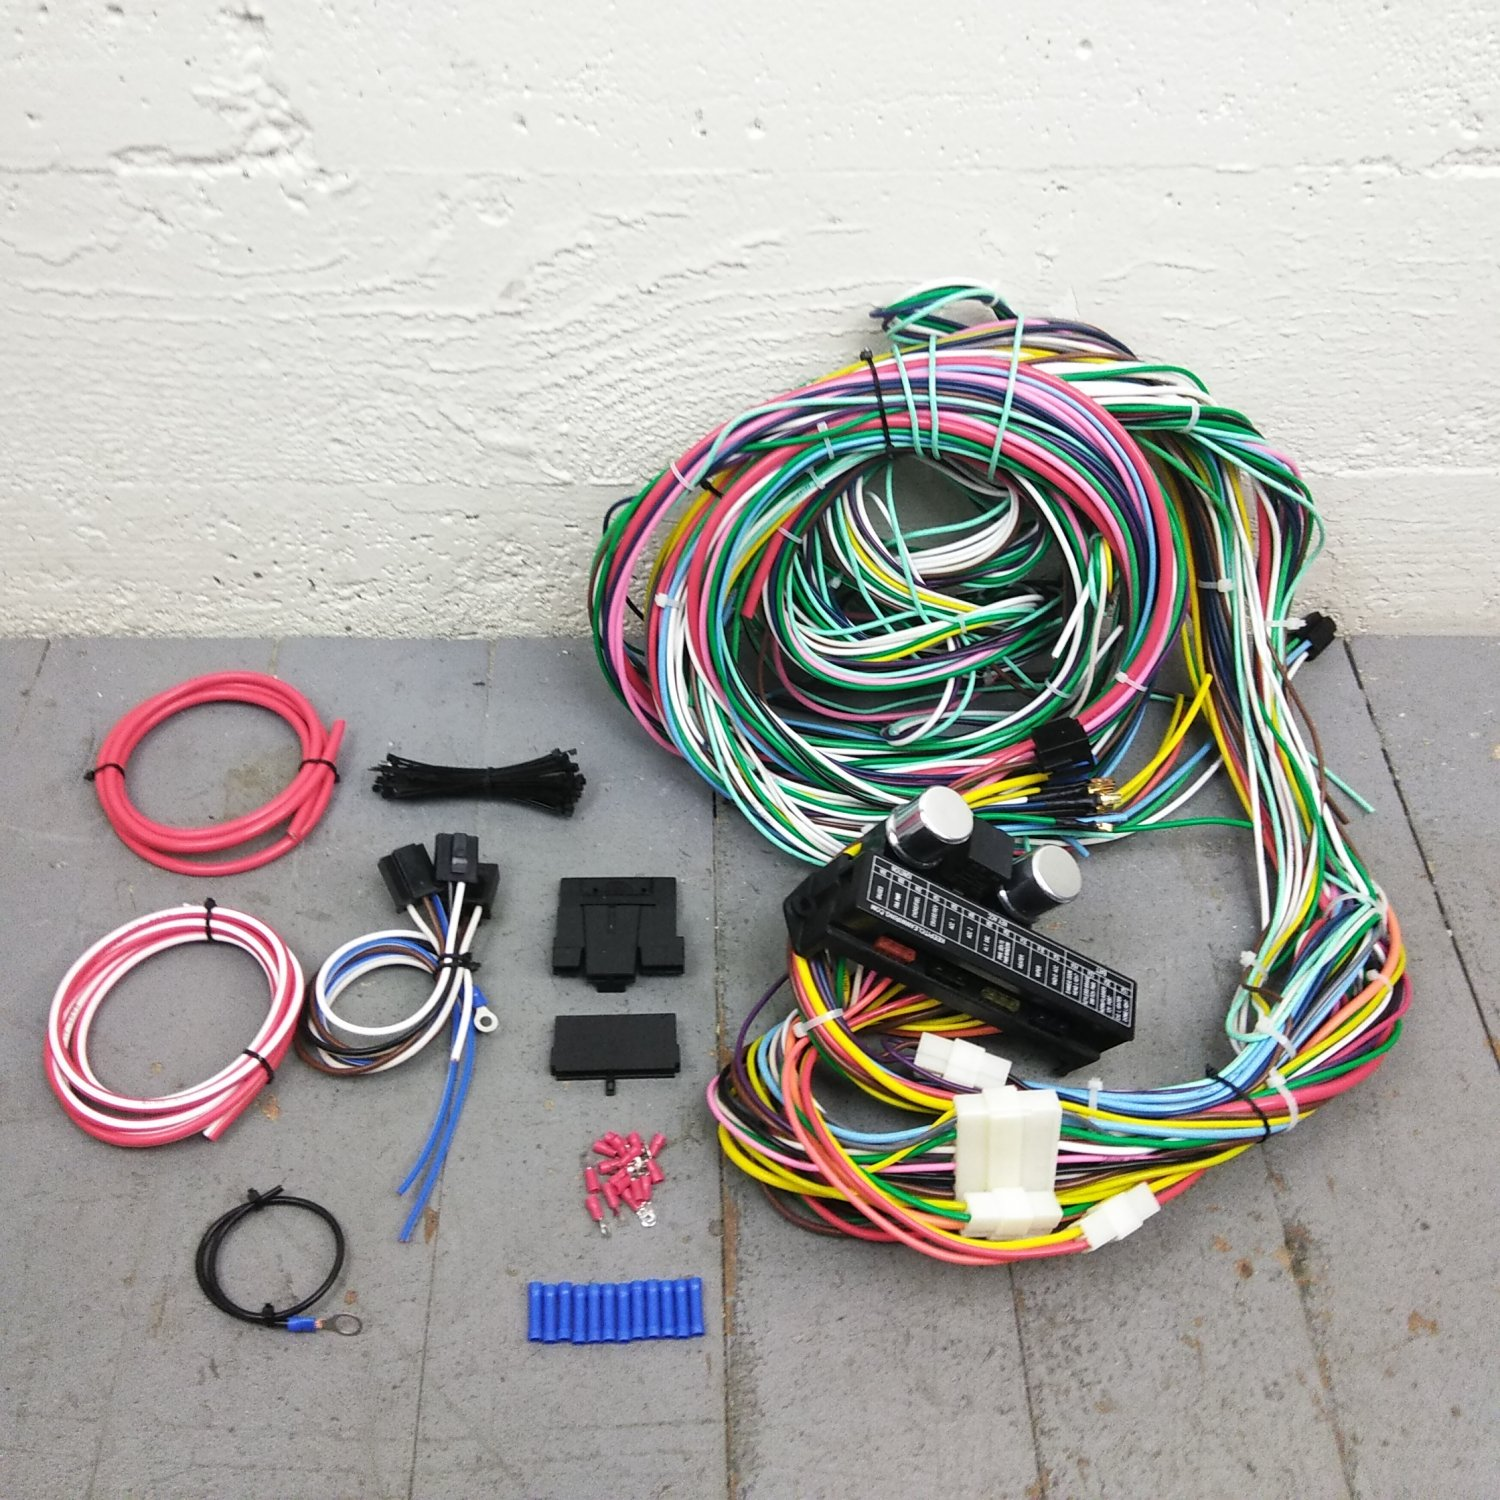 hight resolution of 1964 1967 chevy ii nova wire harness upgrade kit fits painless compact update bar product description c